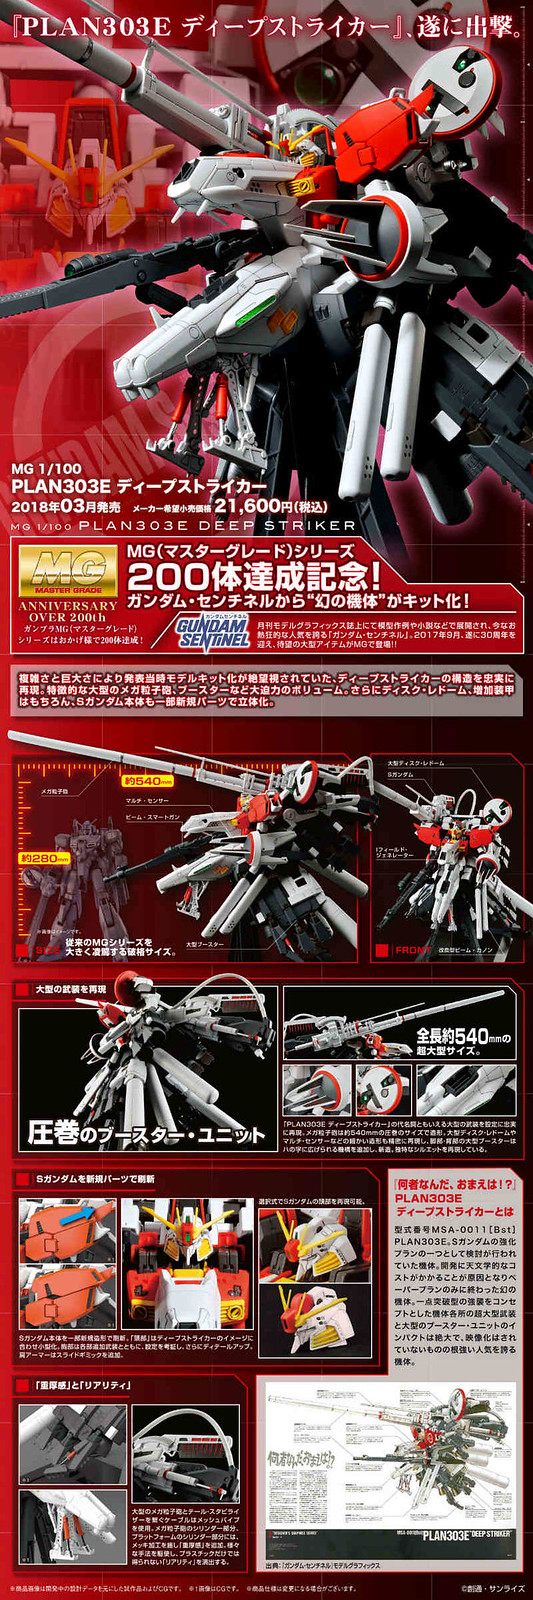 M G 1/100 Plan303 Deep Striker